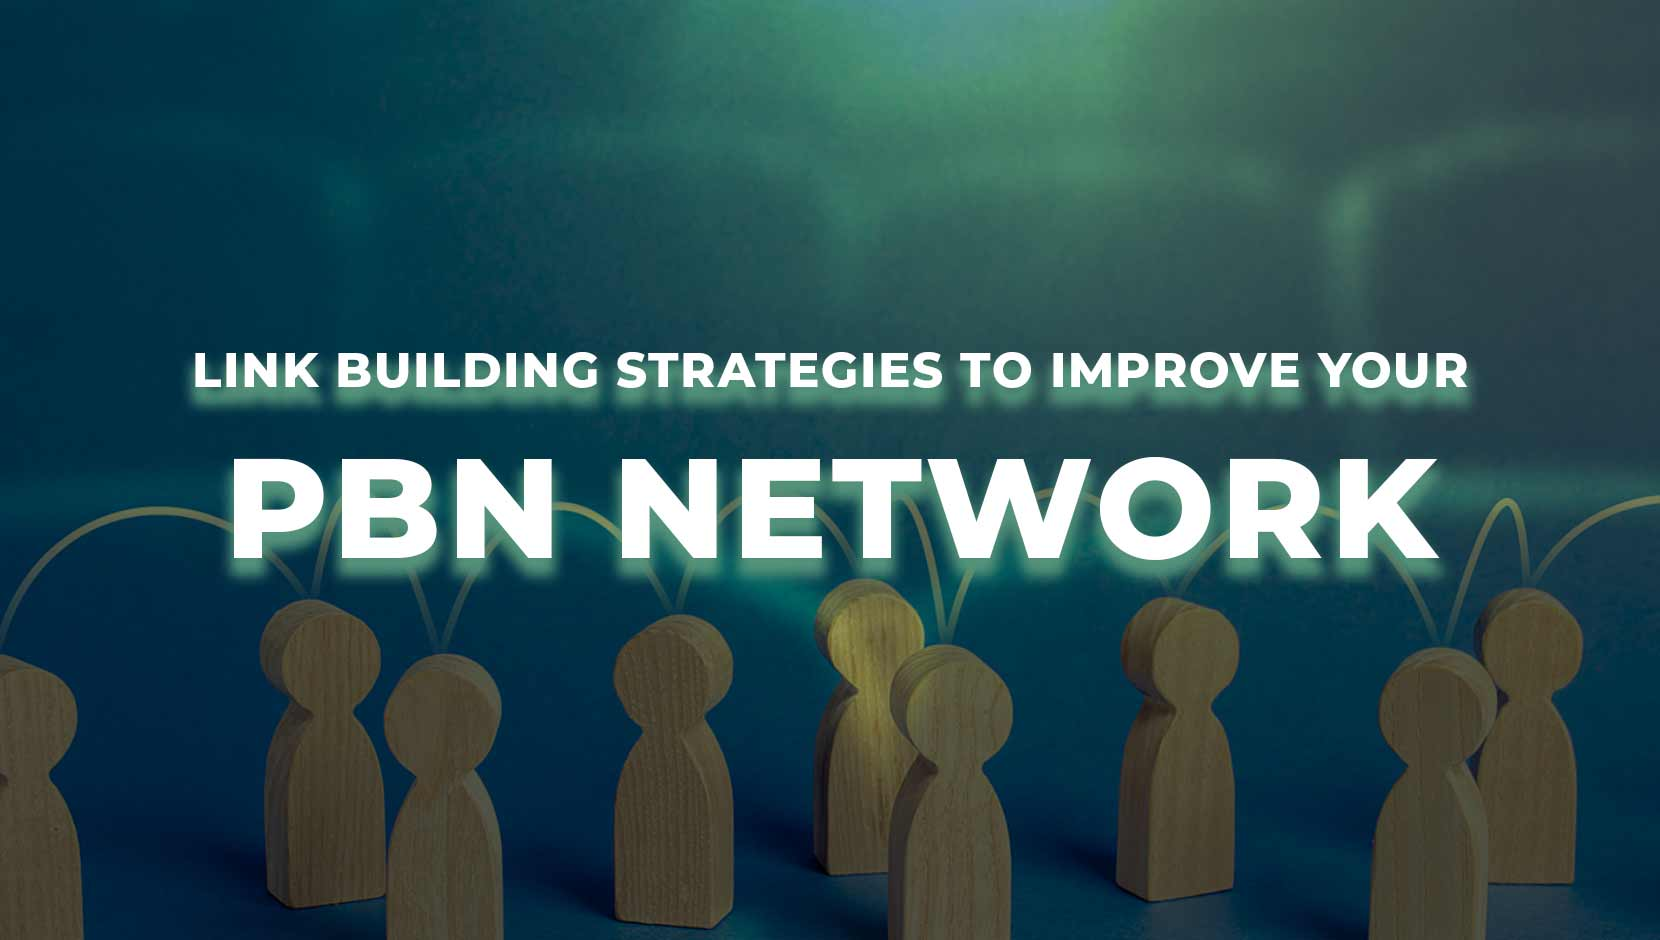 4 Link Building Strategies to Improve Your PBN Network